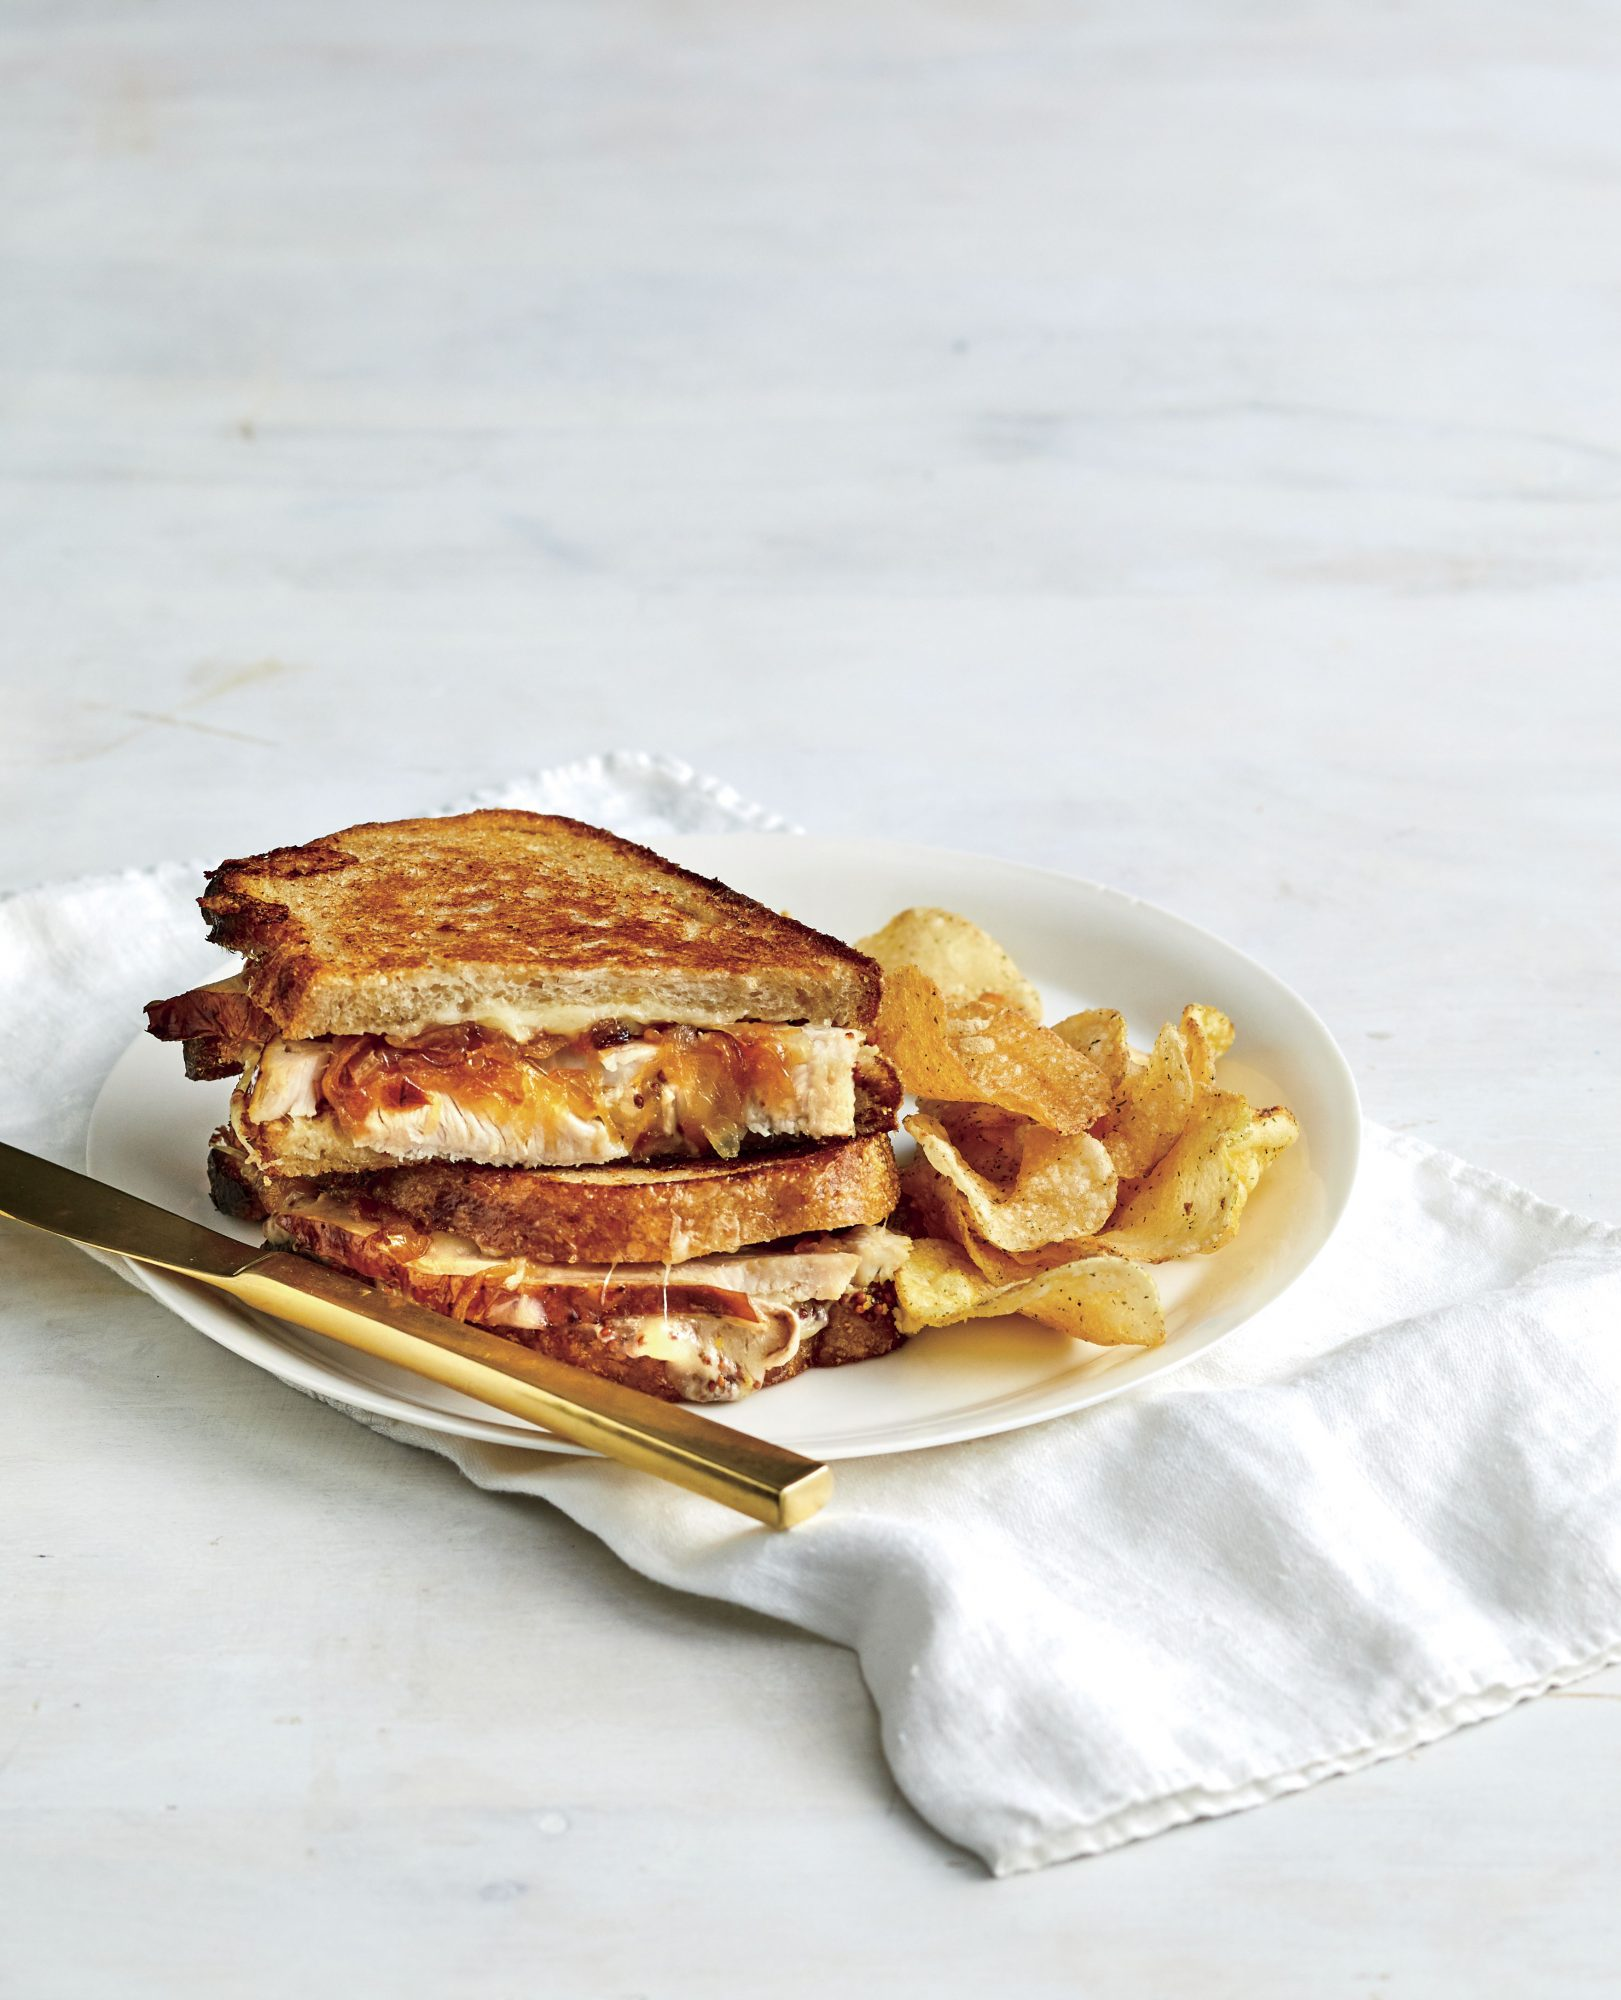 Turkey, Caramelized Onion, and Gruyère Grilled Cheese